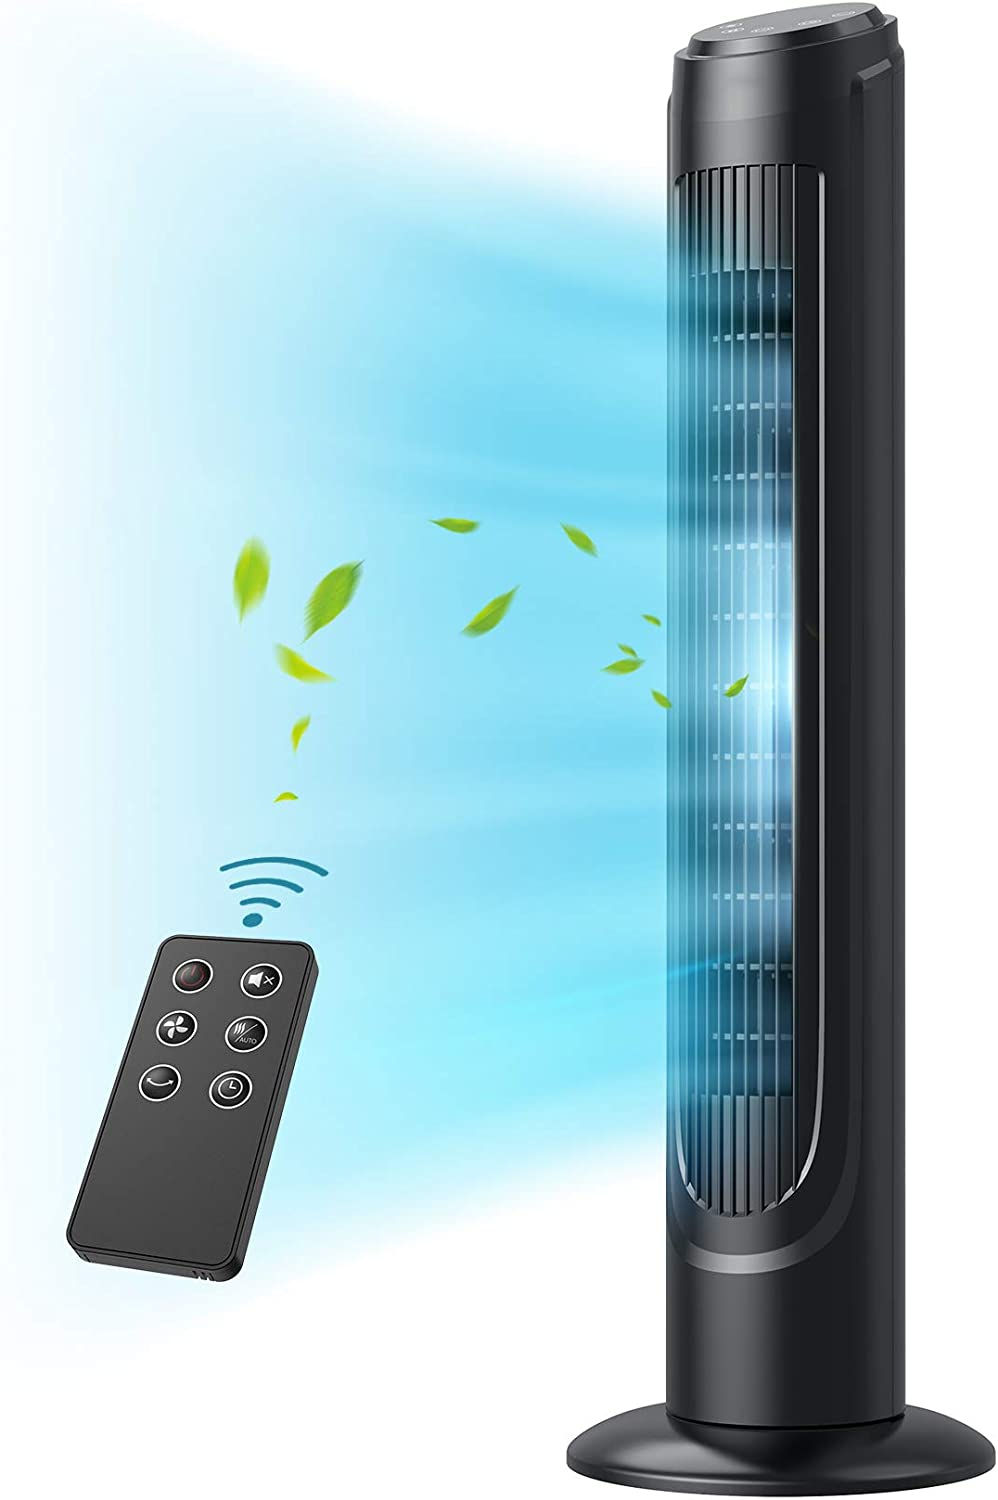 """Tower Fan, Dreo 90° Oscillating Fans with Remote, Quiet Cooling,12 Modes, 12H Timer, Space-Saving, LED Display with Touch Control, 40"""" Portable Floor Bladeless Fan for Bedroom Living Rooms Office"""